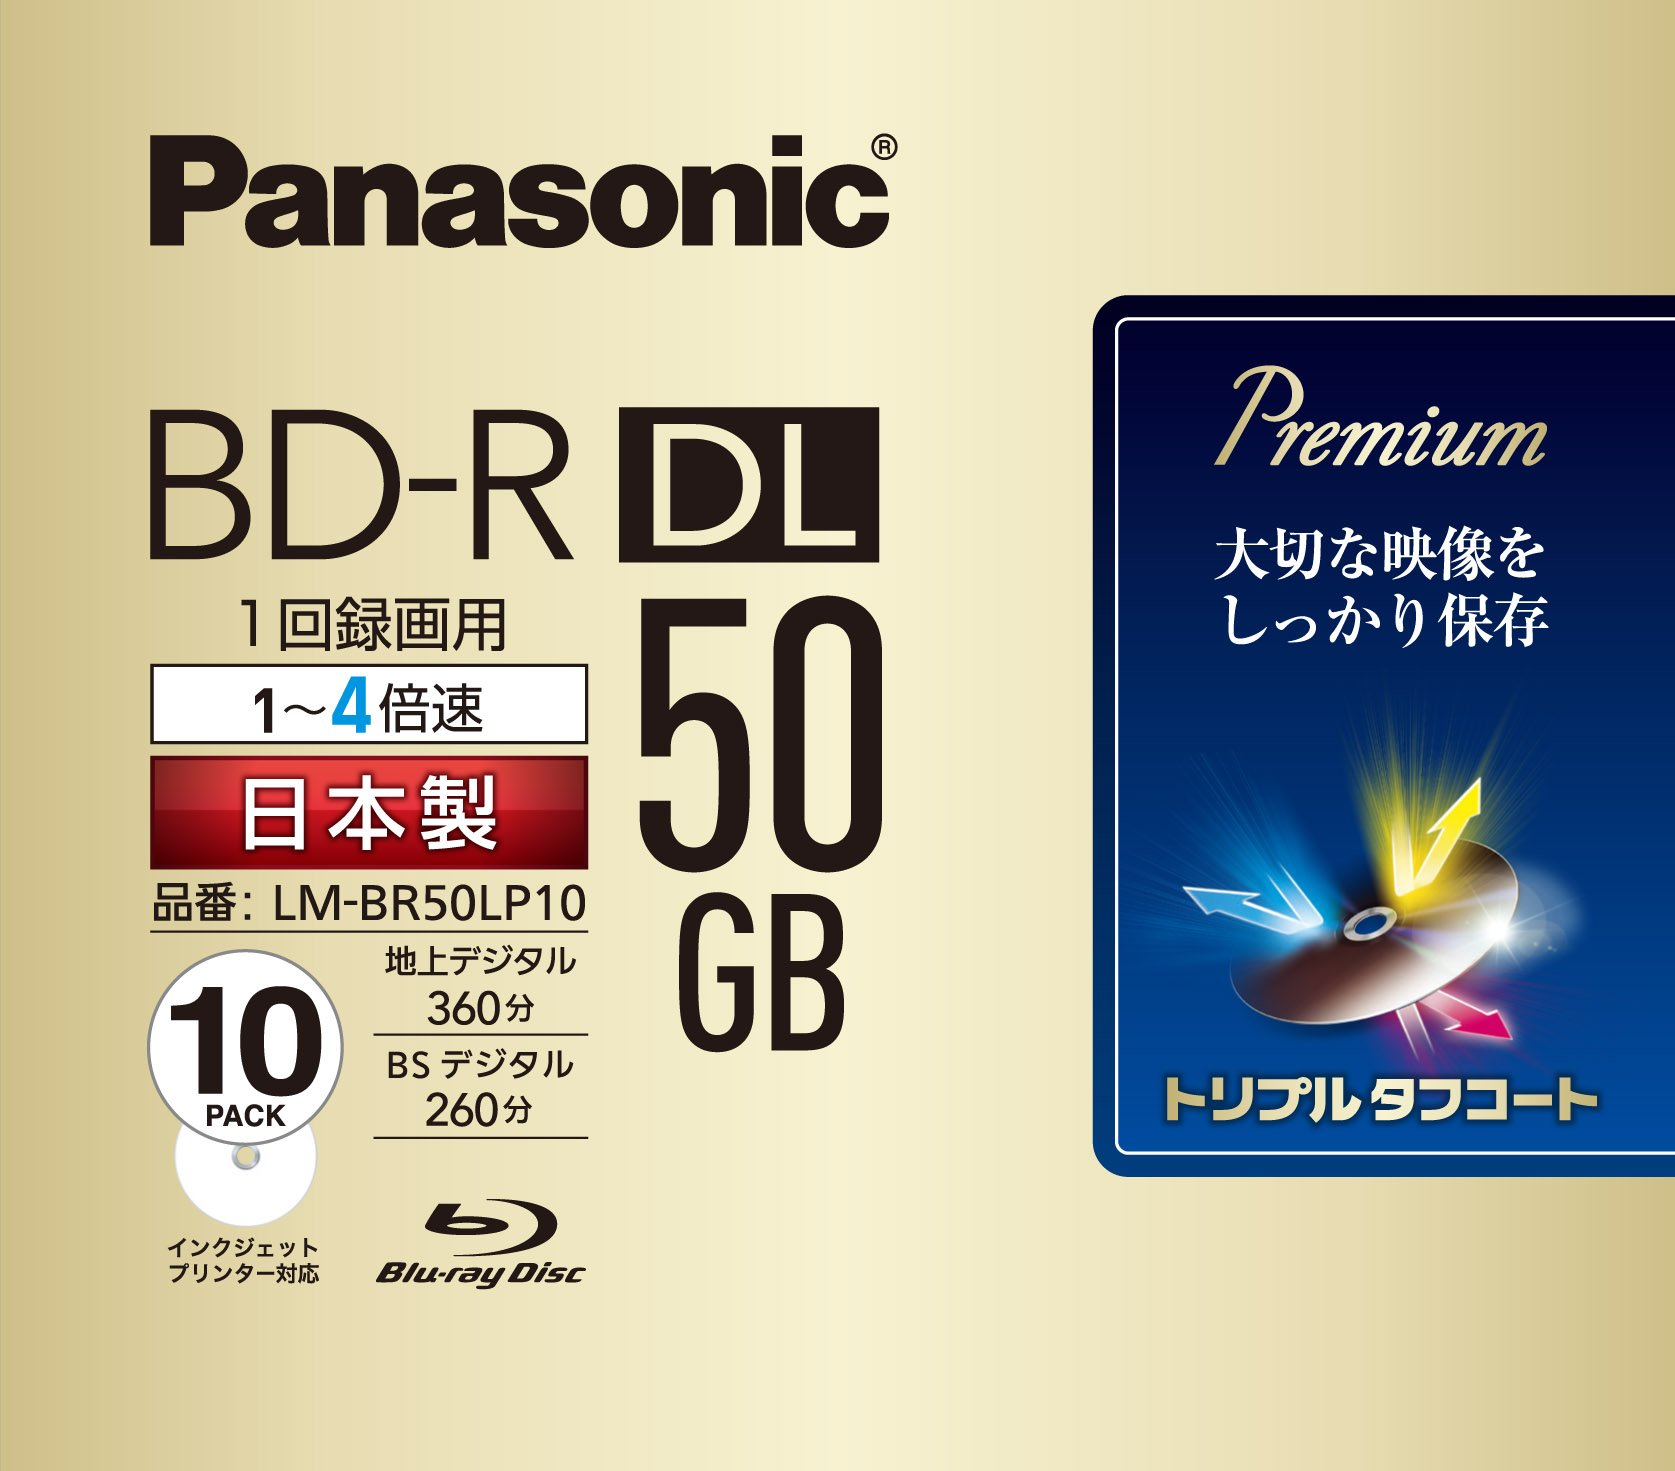 Panasonic Blu-ray BD-R Recordable DL Disk | 50GB 4x Speed | 10 Pack Ink-jet Printable